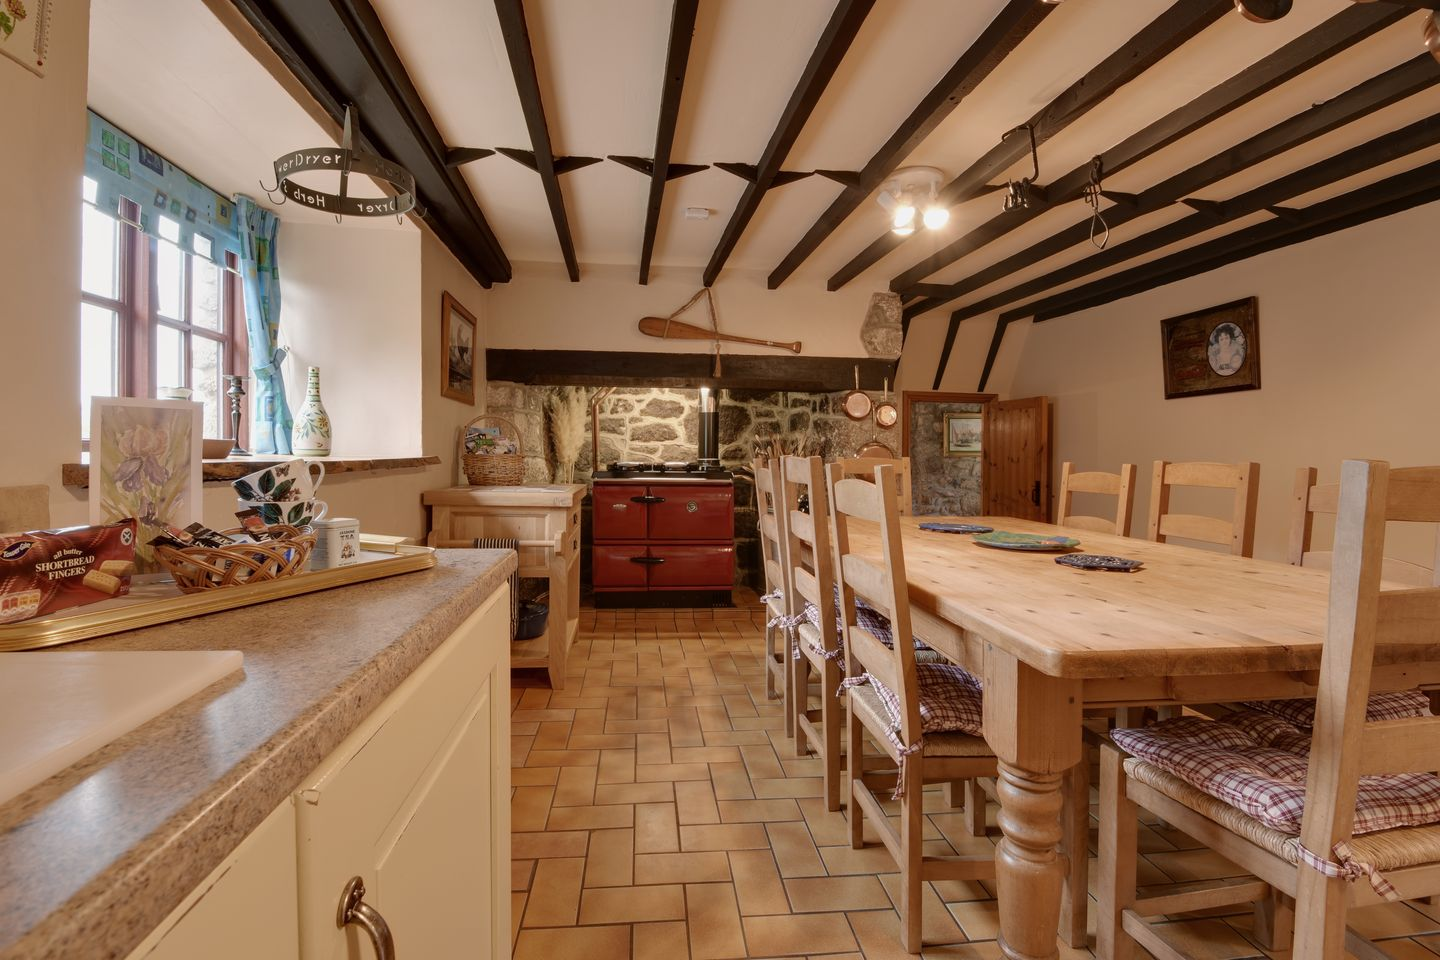 Lower Venton Chagford Kitchen Dining Room